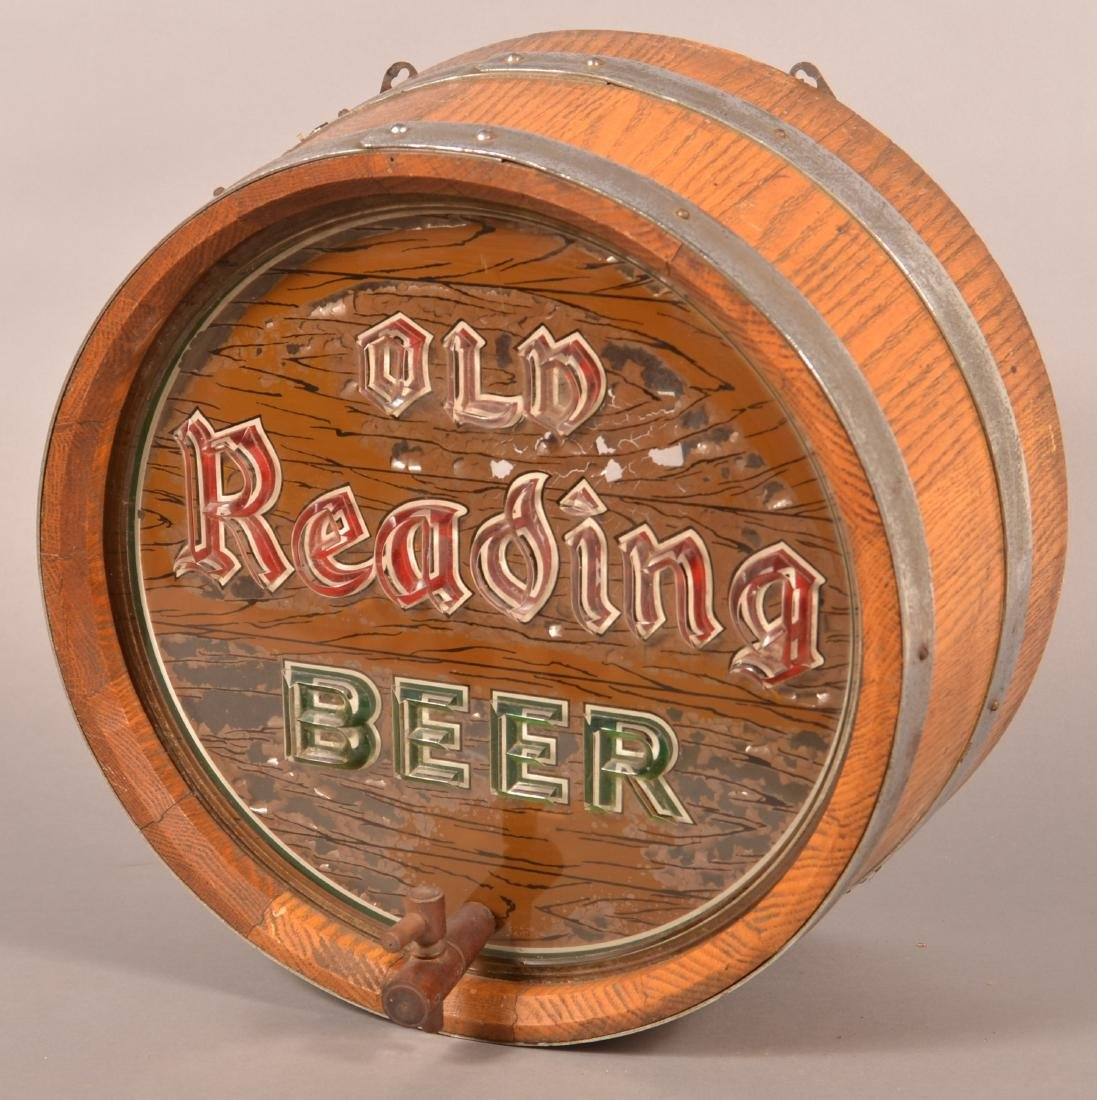 """OLD READING BEER"" Advertising Barrel Light."